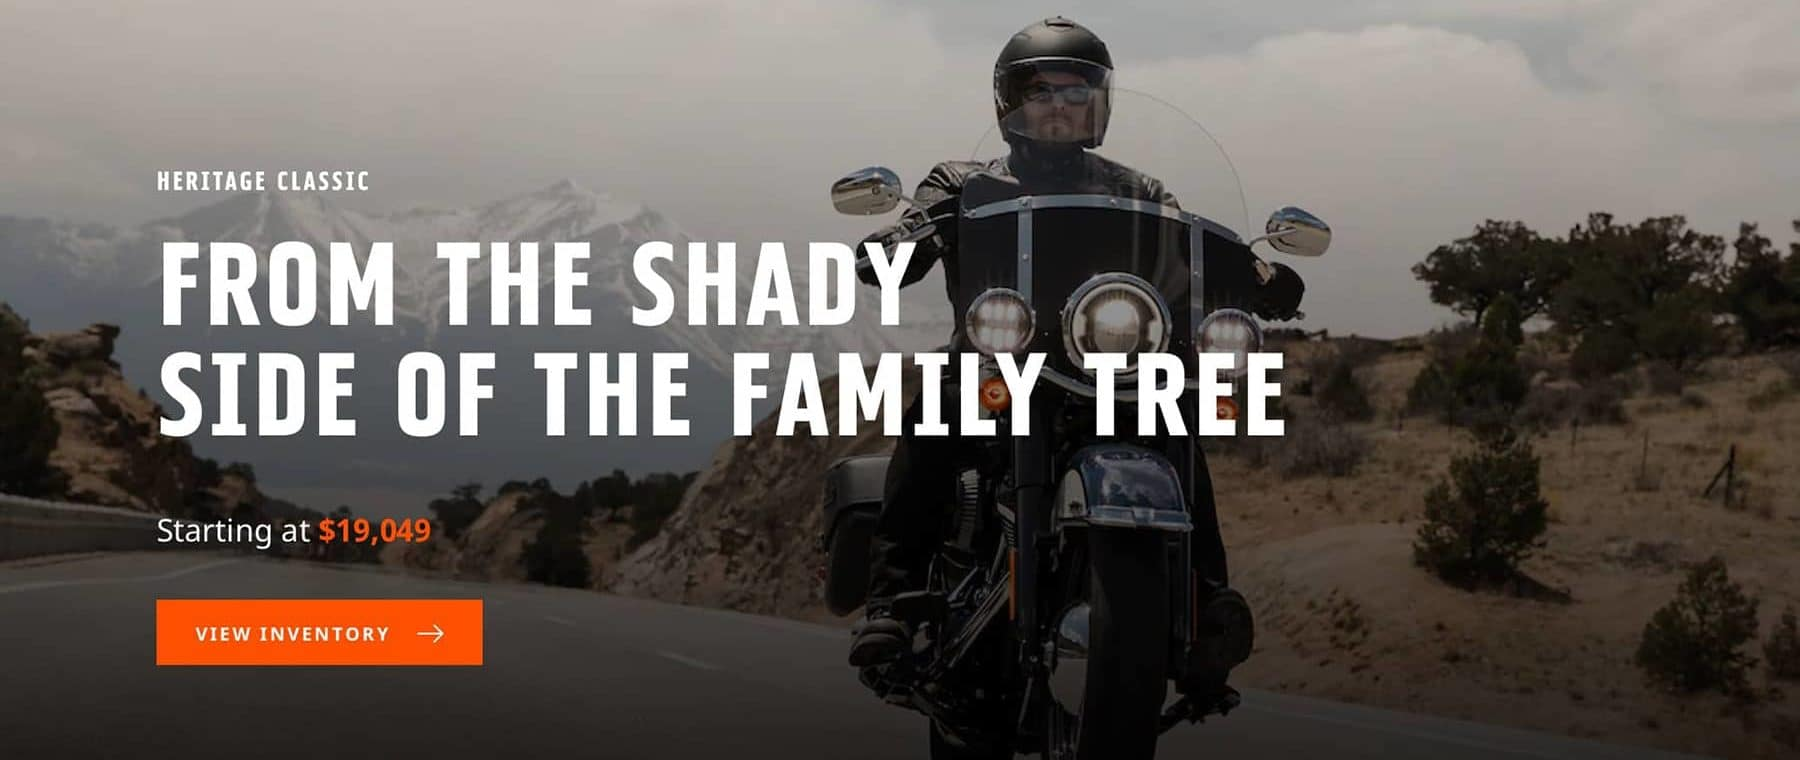 Los Angeles Harley-Davidson | Harley-Davidson Dealer in